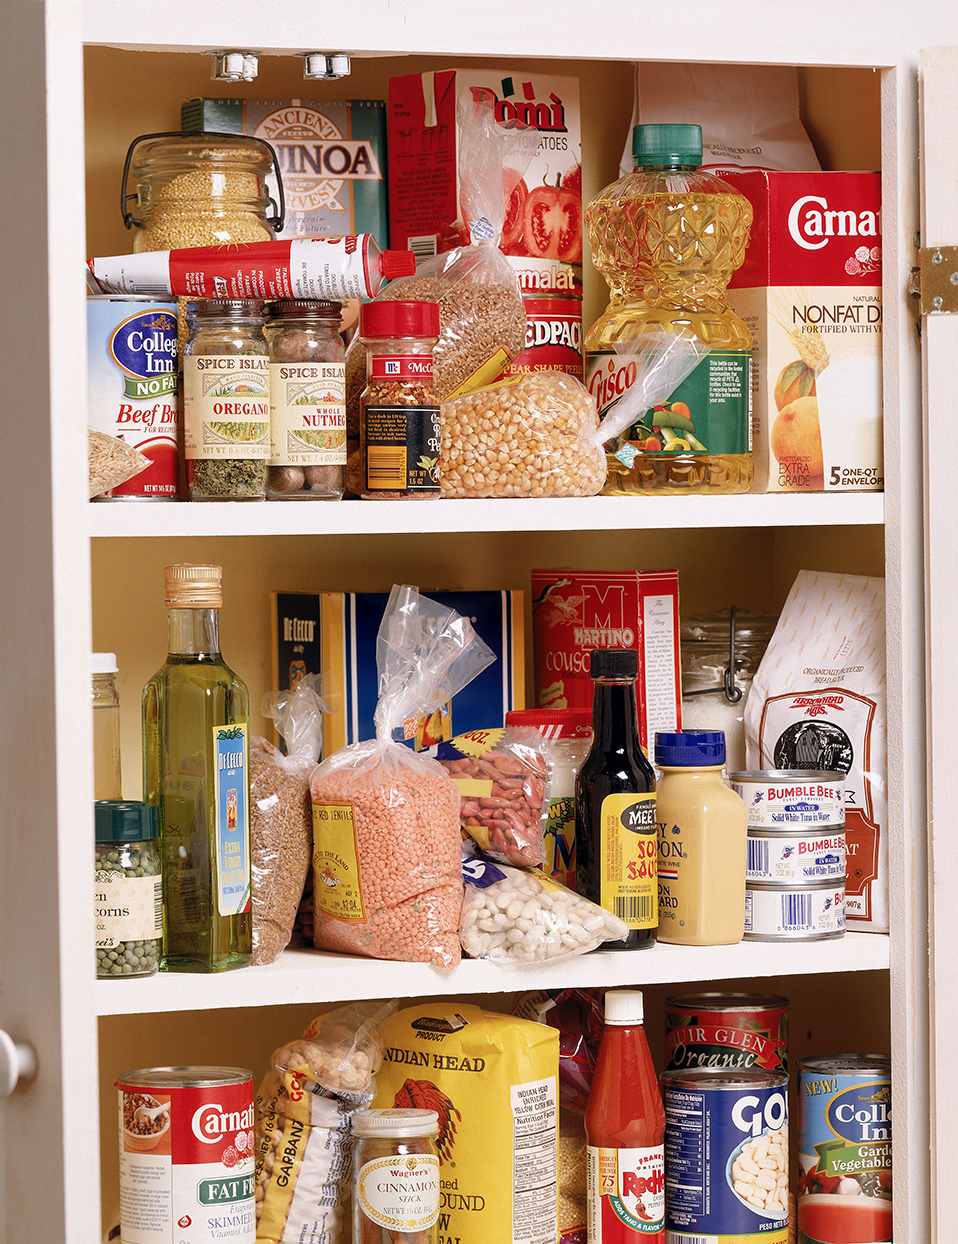 food items in home pantry closet shelf